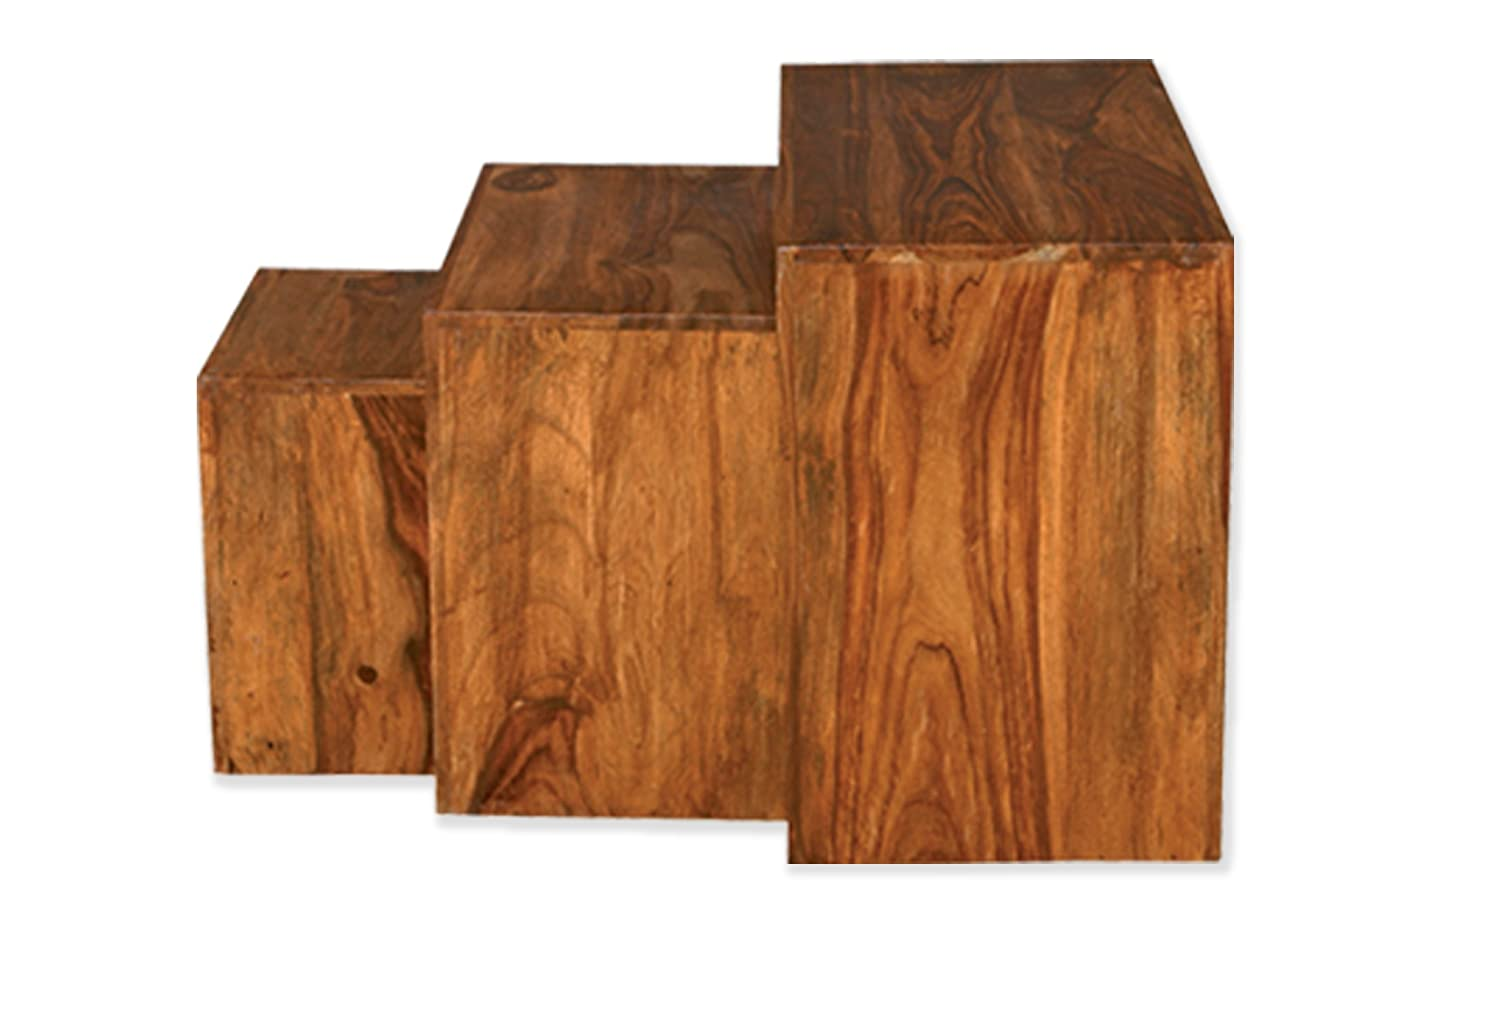 Cube Indian Rosewood Nest of Tables/Solid Sheesham Indian Rosewood Nesting Tables/Modern Living Room Furniture